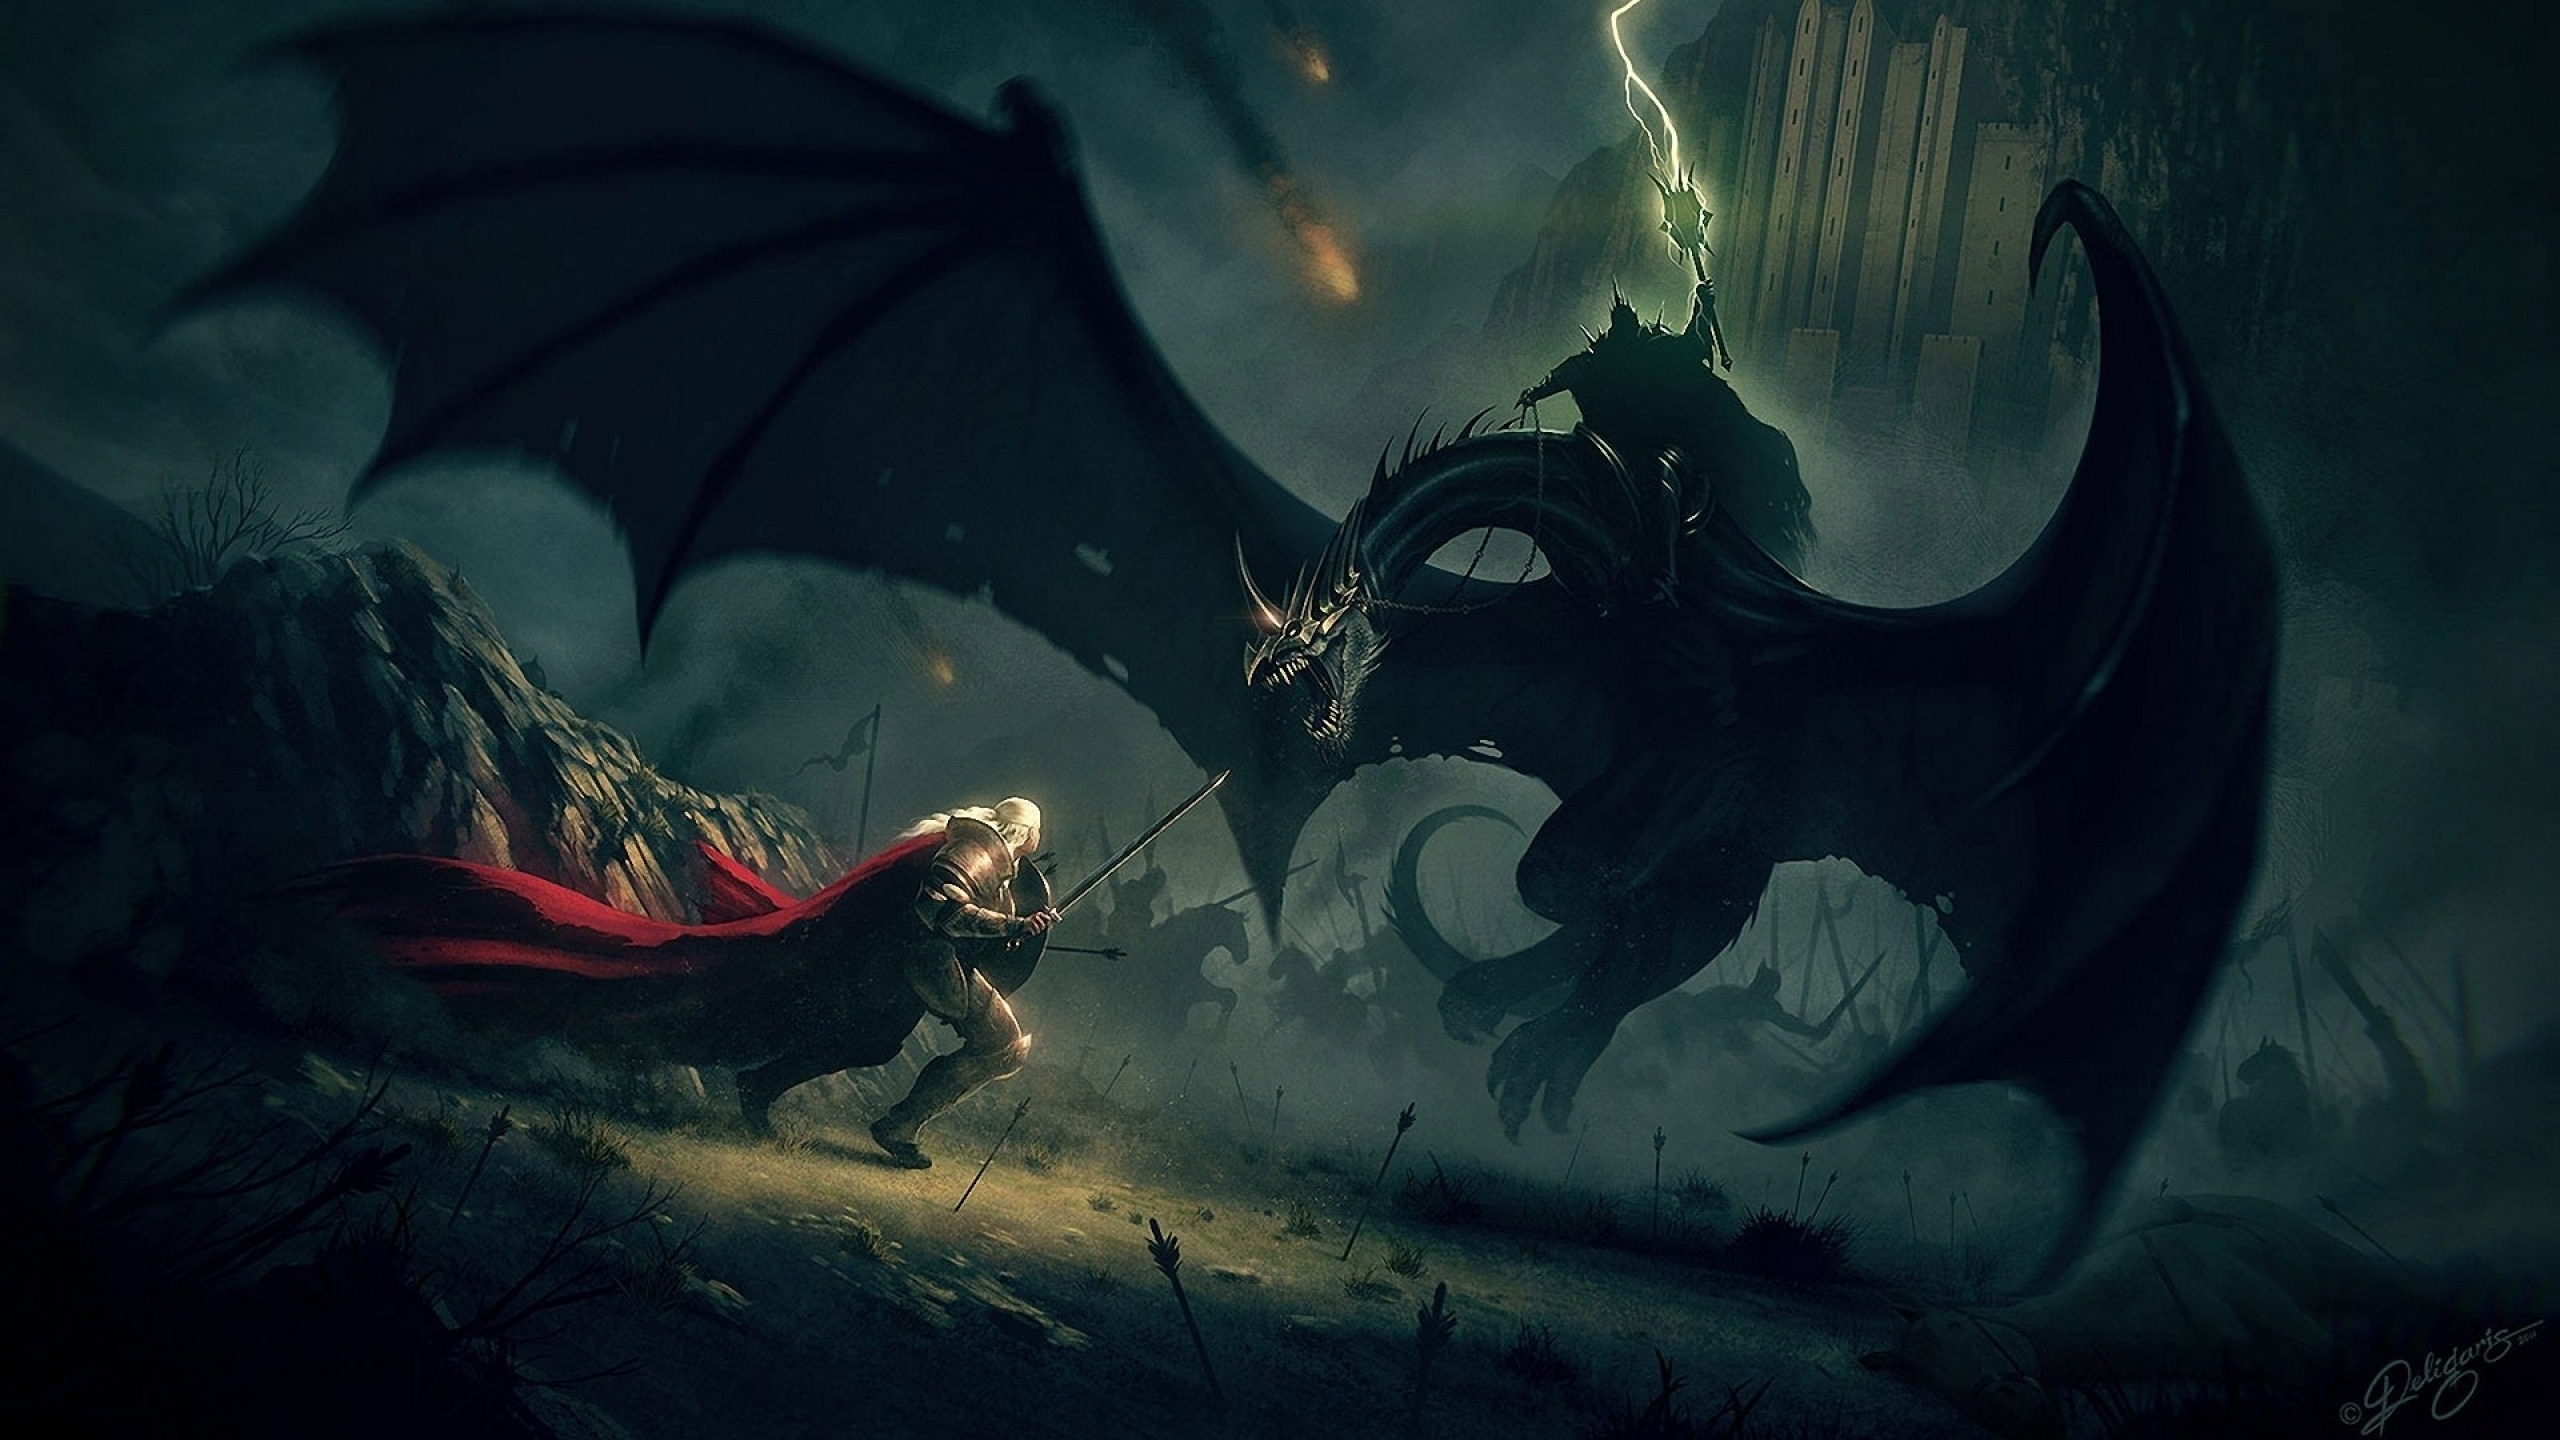 Lord of the Rings Image 3